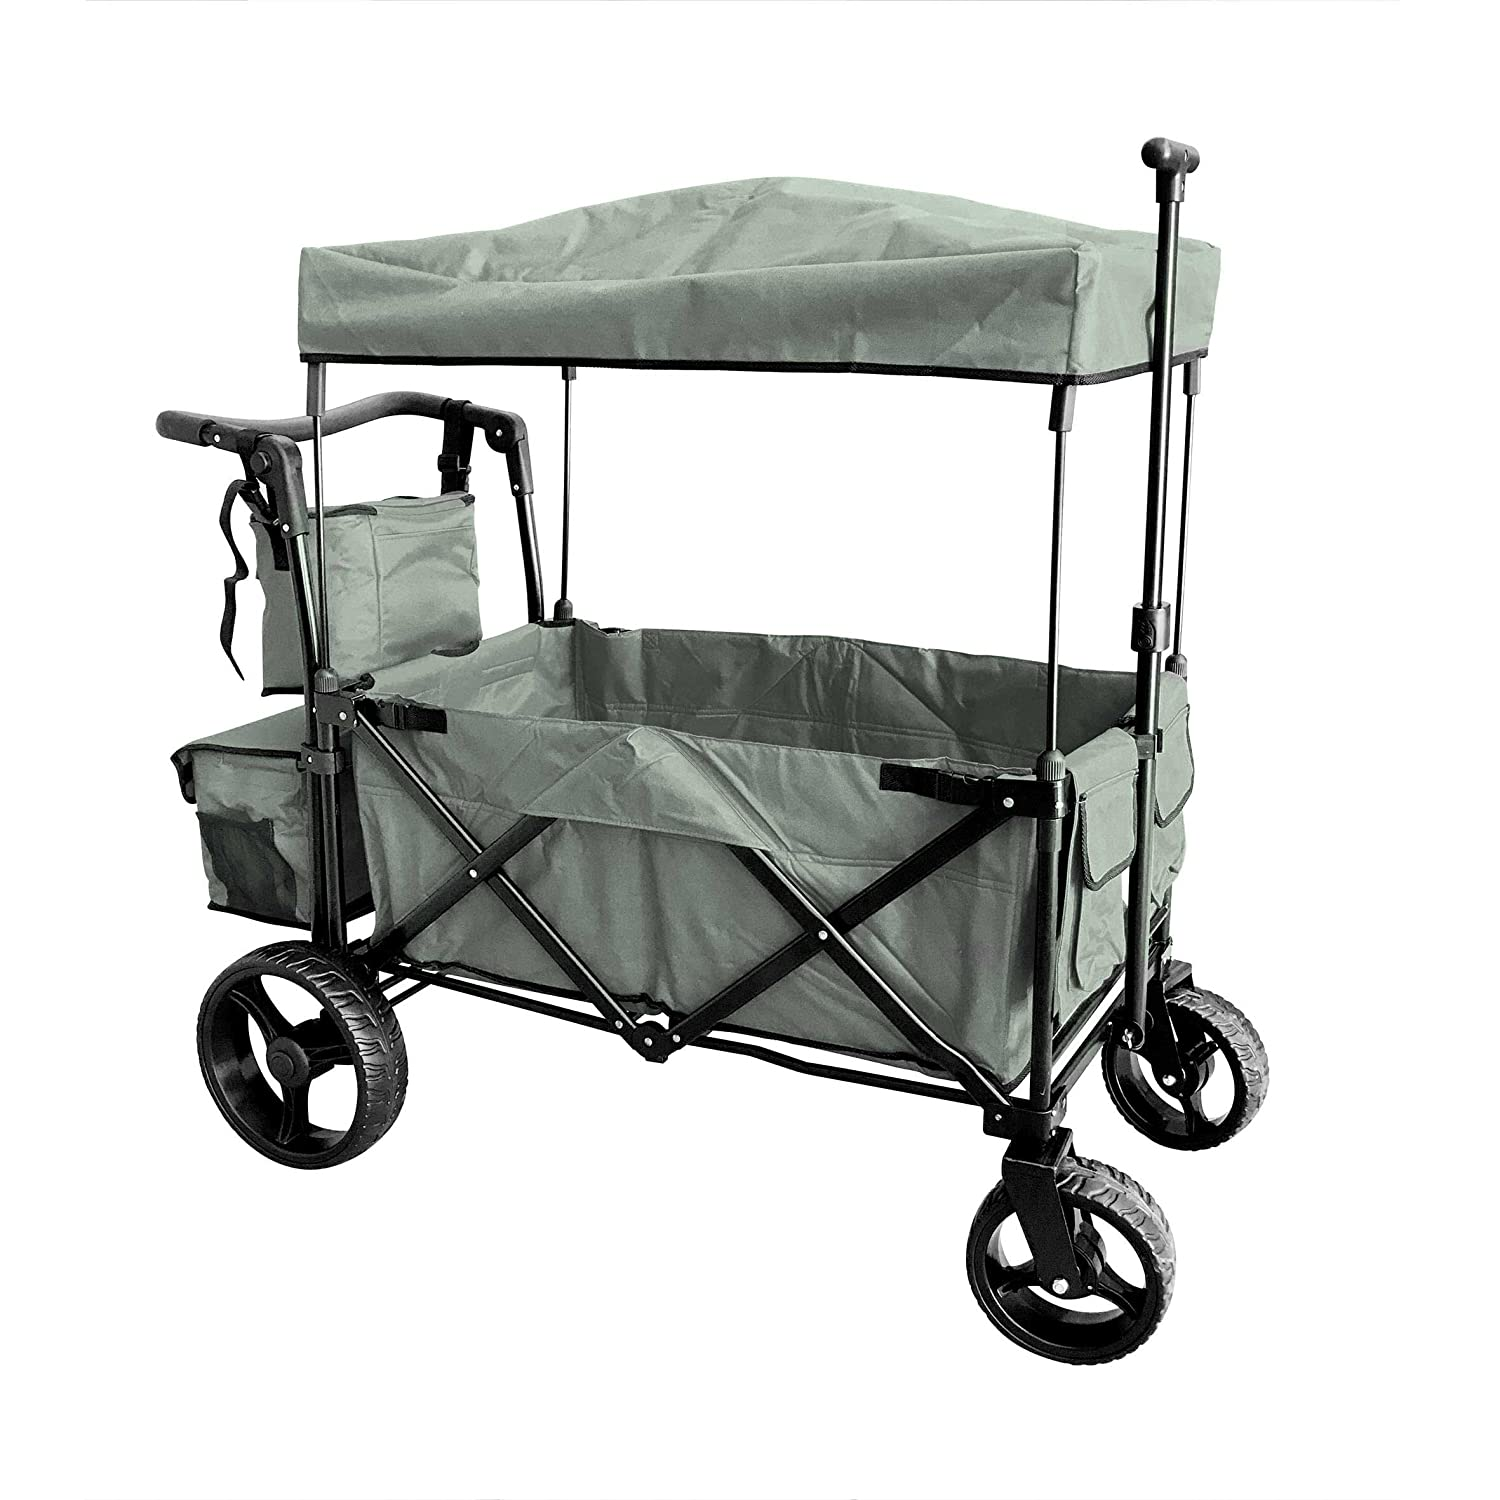 Grey Push and Pull Handle with Wide Off Road All Terrain Tires Beach Outdoor Sport Collapsible Folding Stroller Wagon Baby Trolley W/Canopy Garden Utility Shopping Travel CARTFREE Carrying Bag WagonBuddy